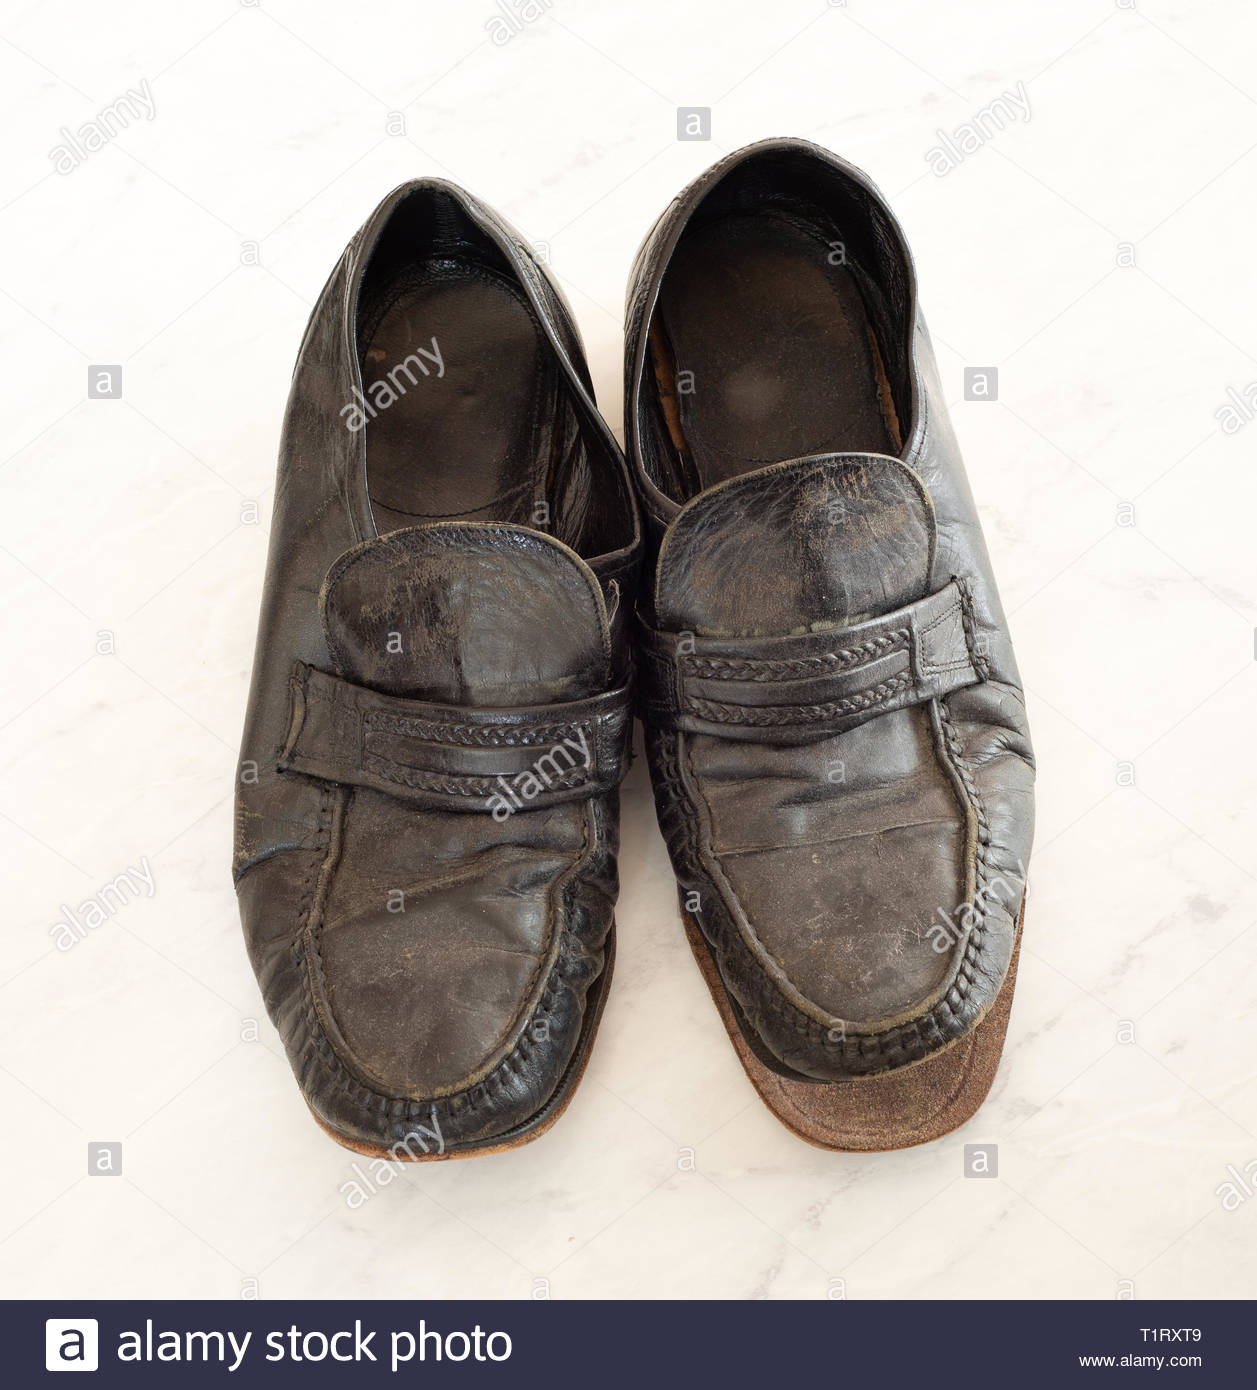 3be4b466 Old pair of Mens leather black dress shoes that are worn out, very dusty  and dirty and falling apart. They need polish and repair